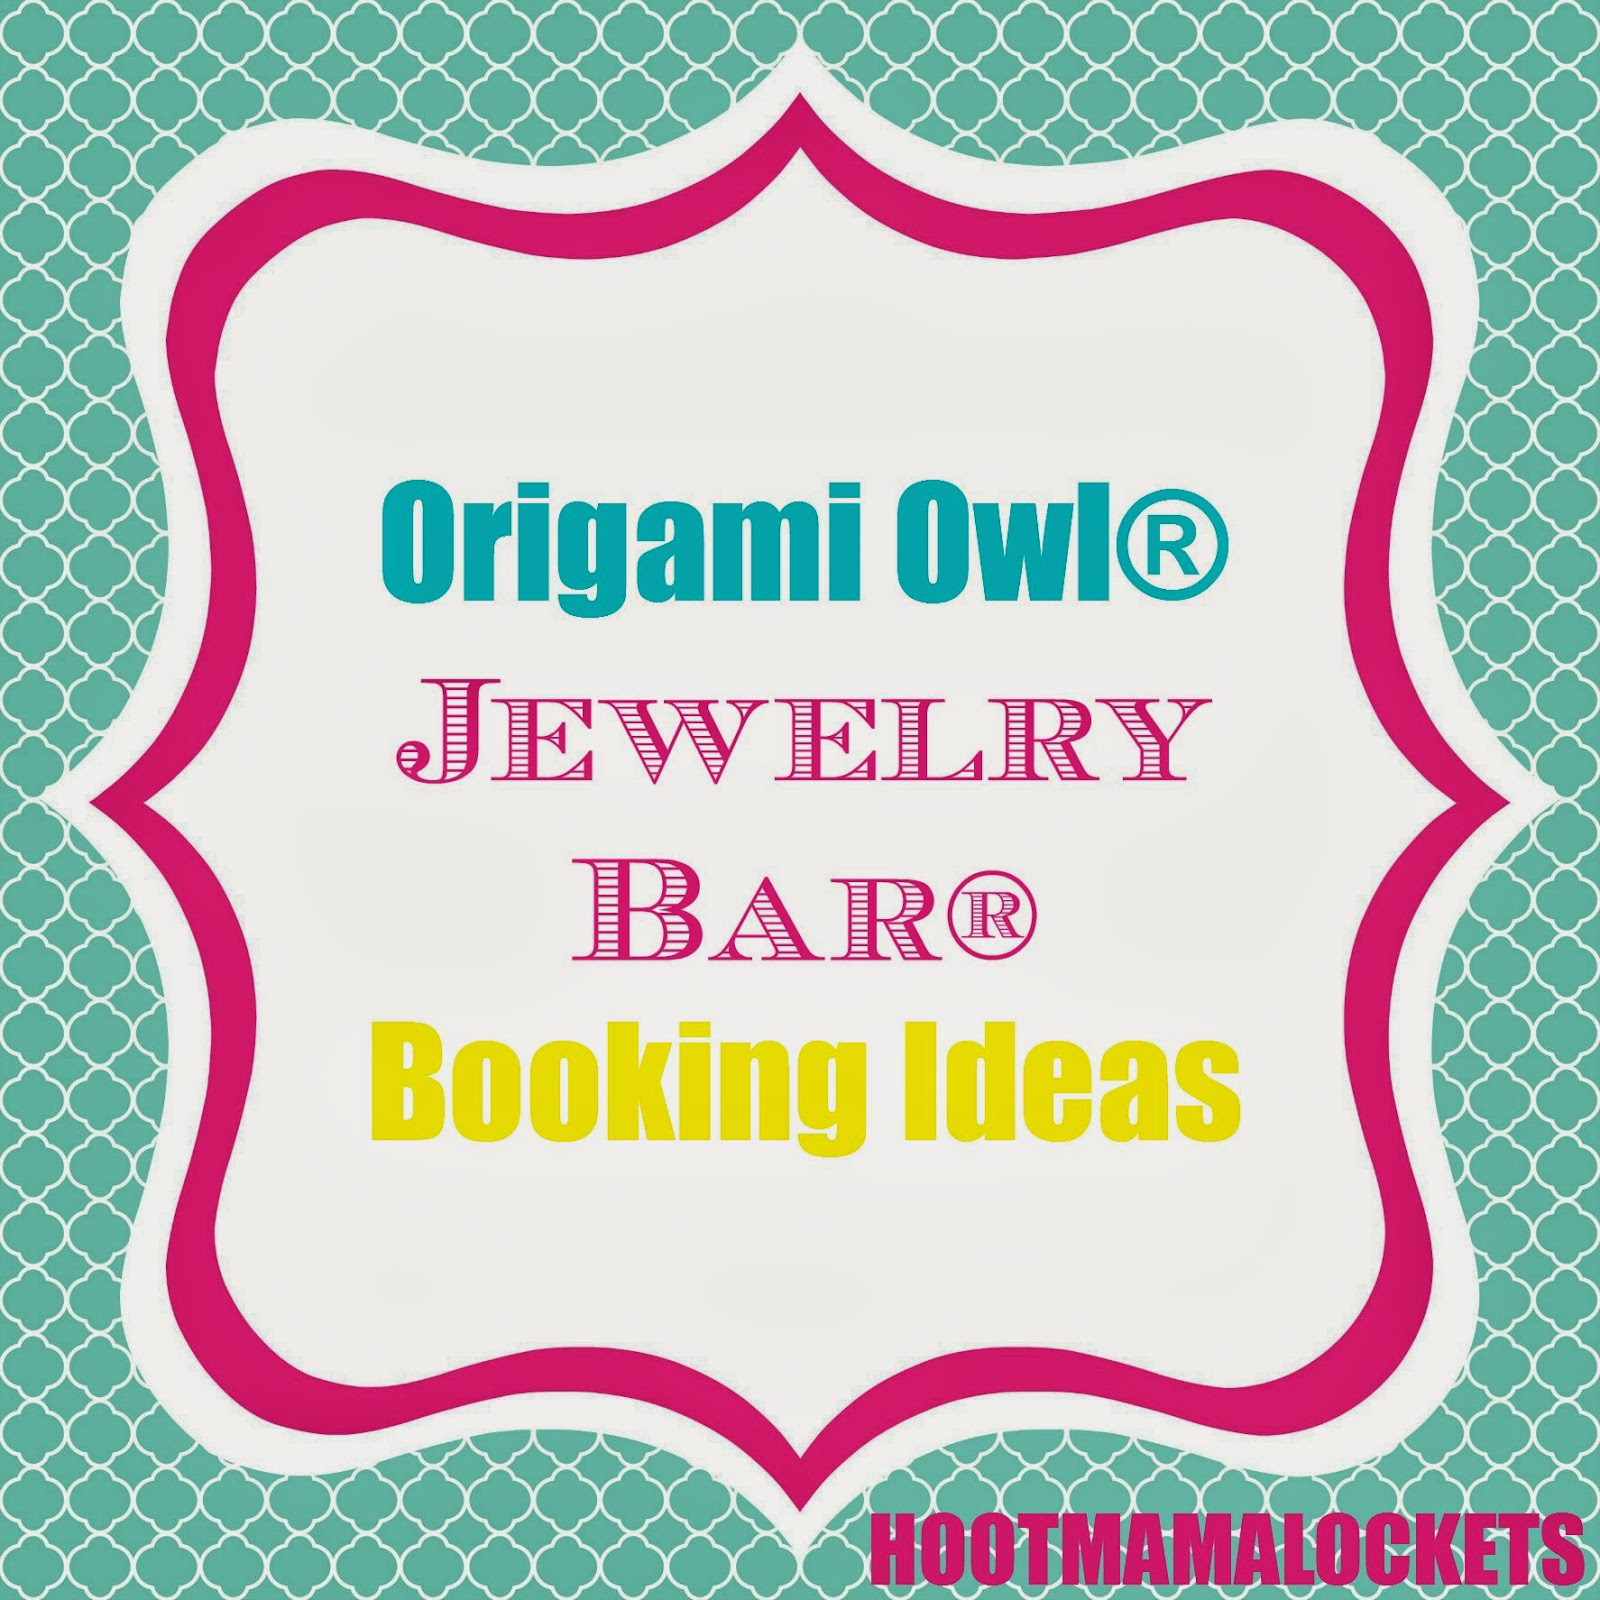 10 Tips for a Successful Facebook Origami Owl Jewelry Bar • San ... | 1600x1600